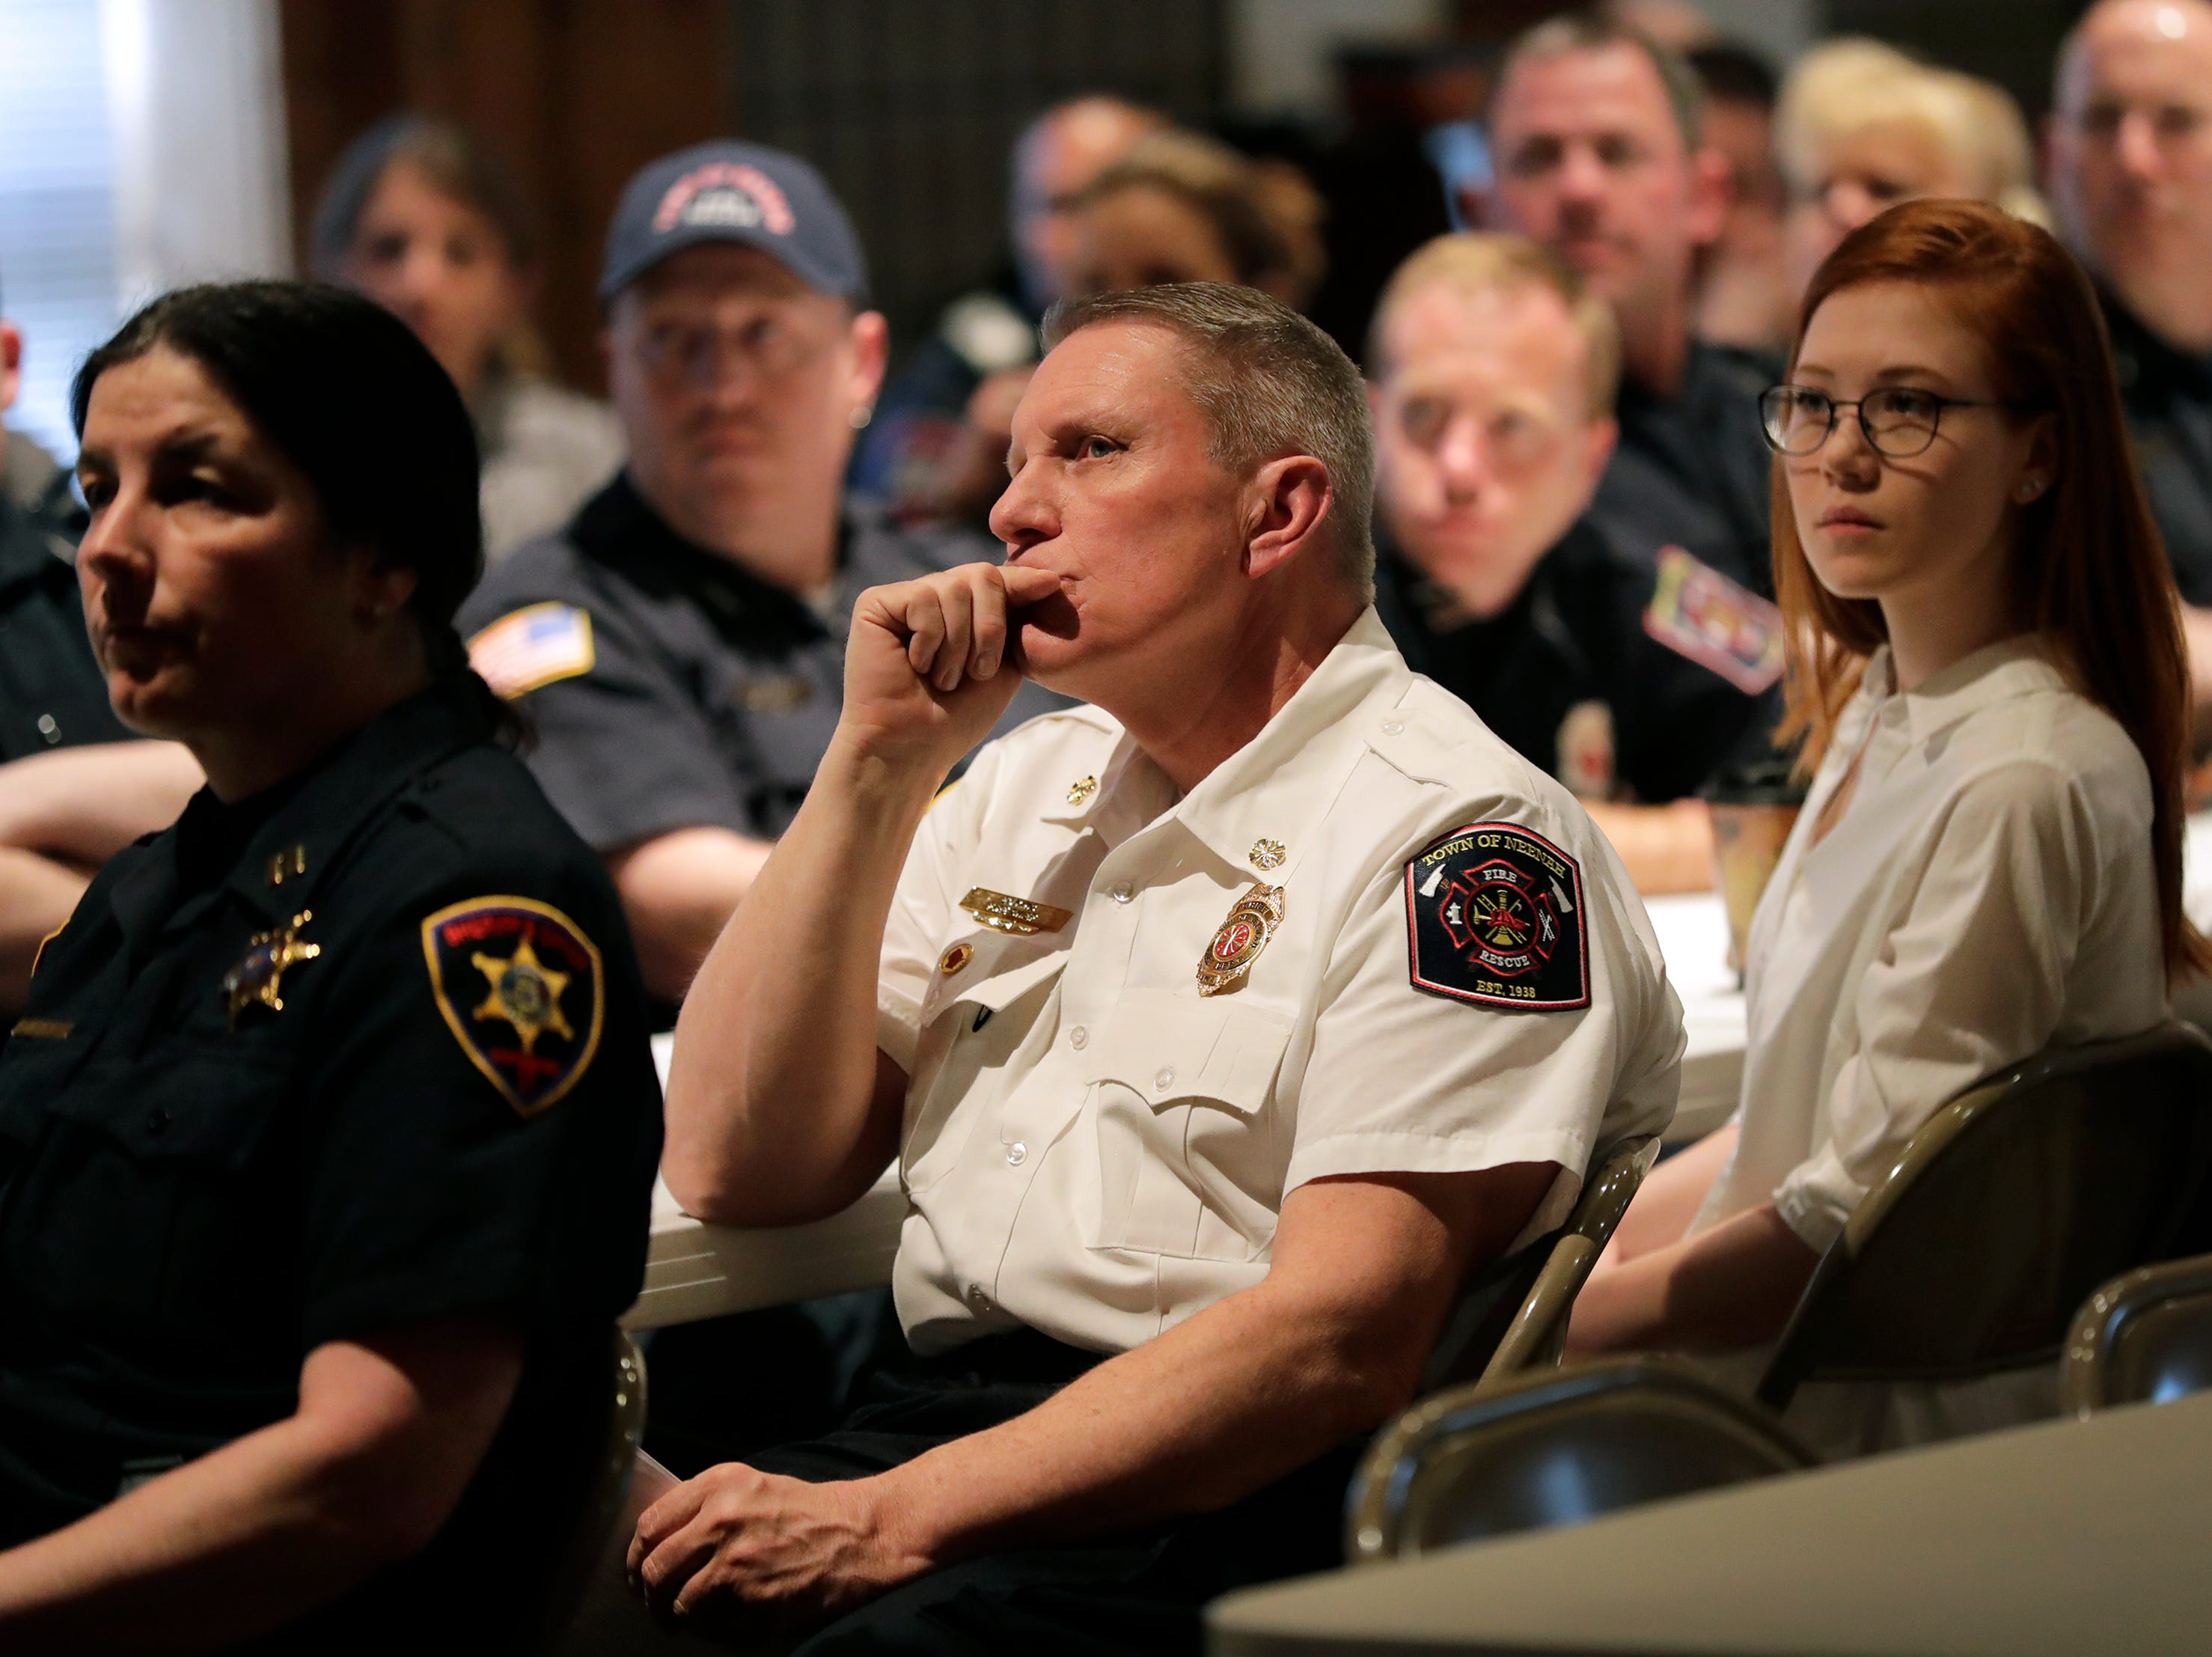 Town of Neenah Fire Department Fire Chief Ed King, center, and other responders watch a video of footage during the I-41 Mass Casualty Incident of Feb. 24, 2019 Recognition Event Tuesday, April 16, 2019, at Gloria Dei Lutheran Church in Neenah, Wis. Dan Powers/USA TODAY NETWORK-Wisconsin